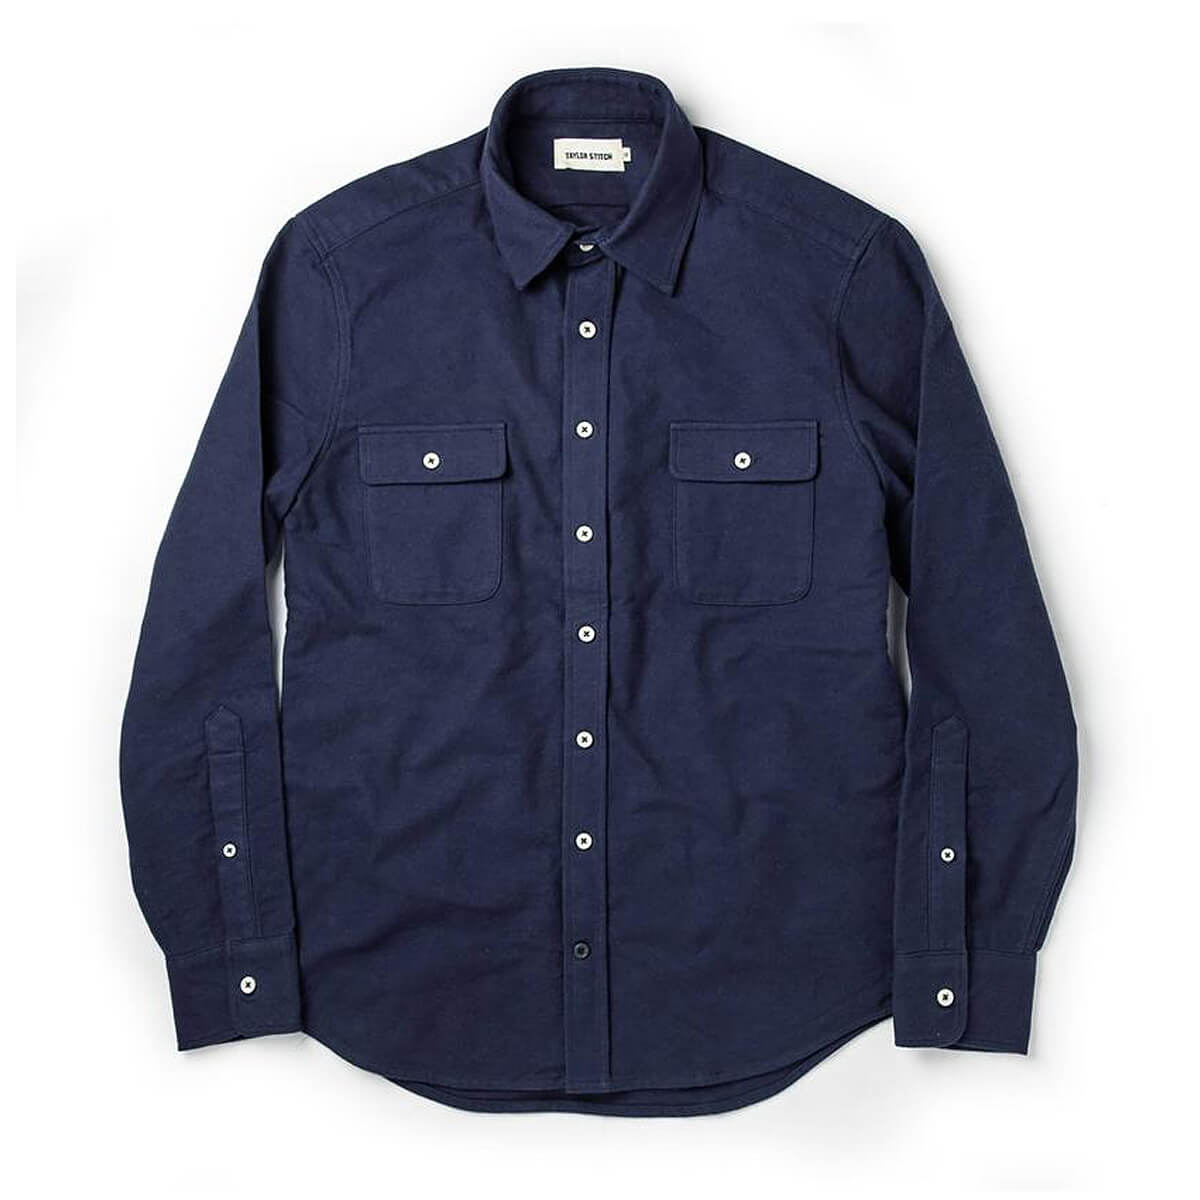 Taylor Stitch - The Yosemite Shirt in Navy